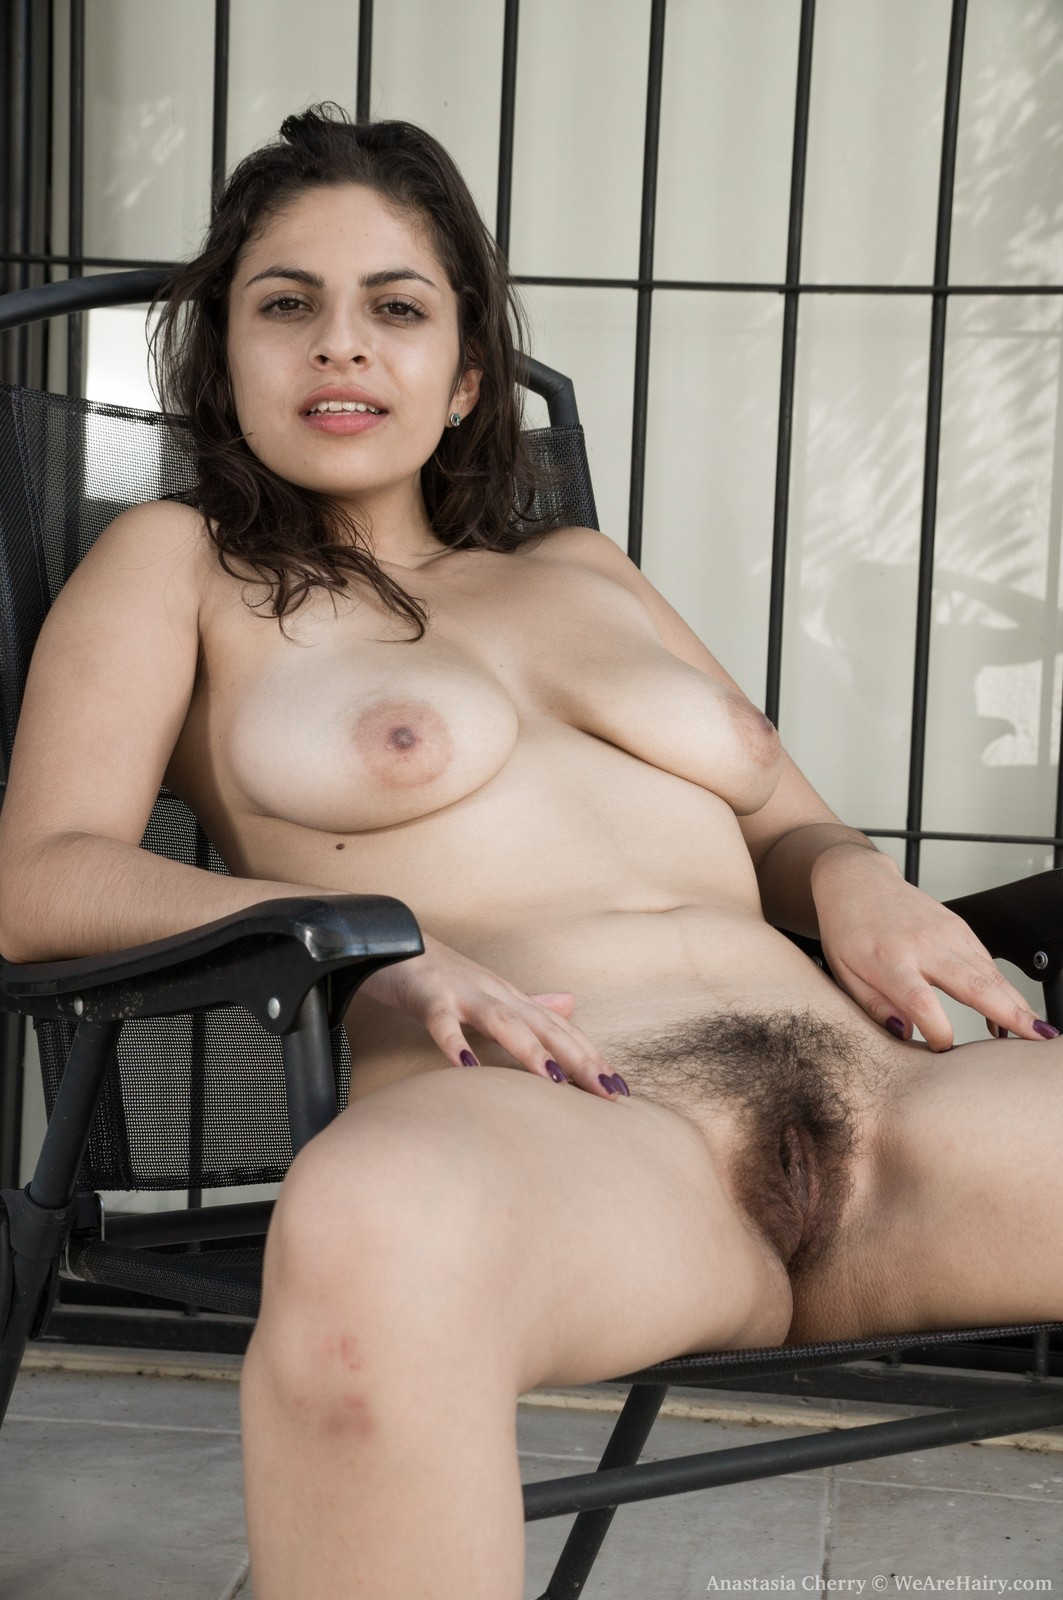 bhavana-hairy-nude-pic-daughter-dad-hot-pics